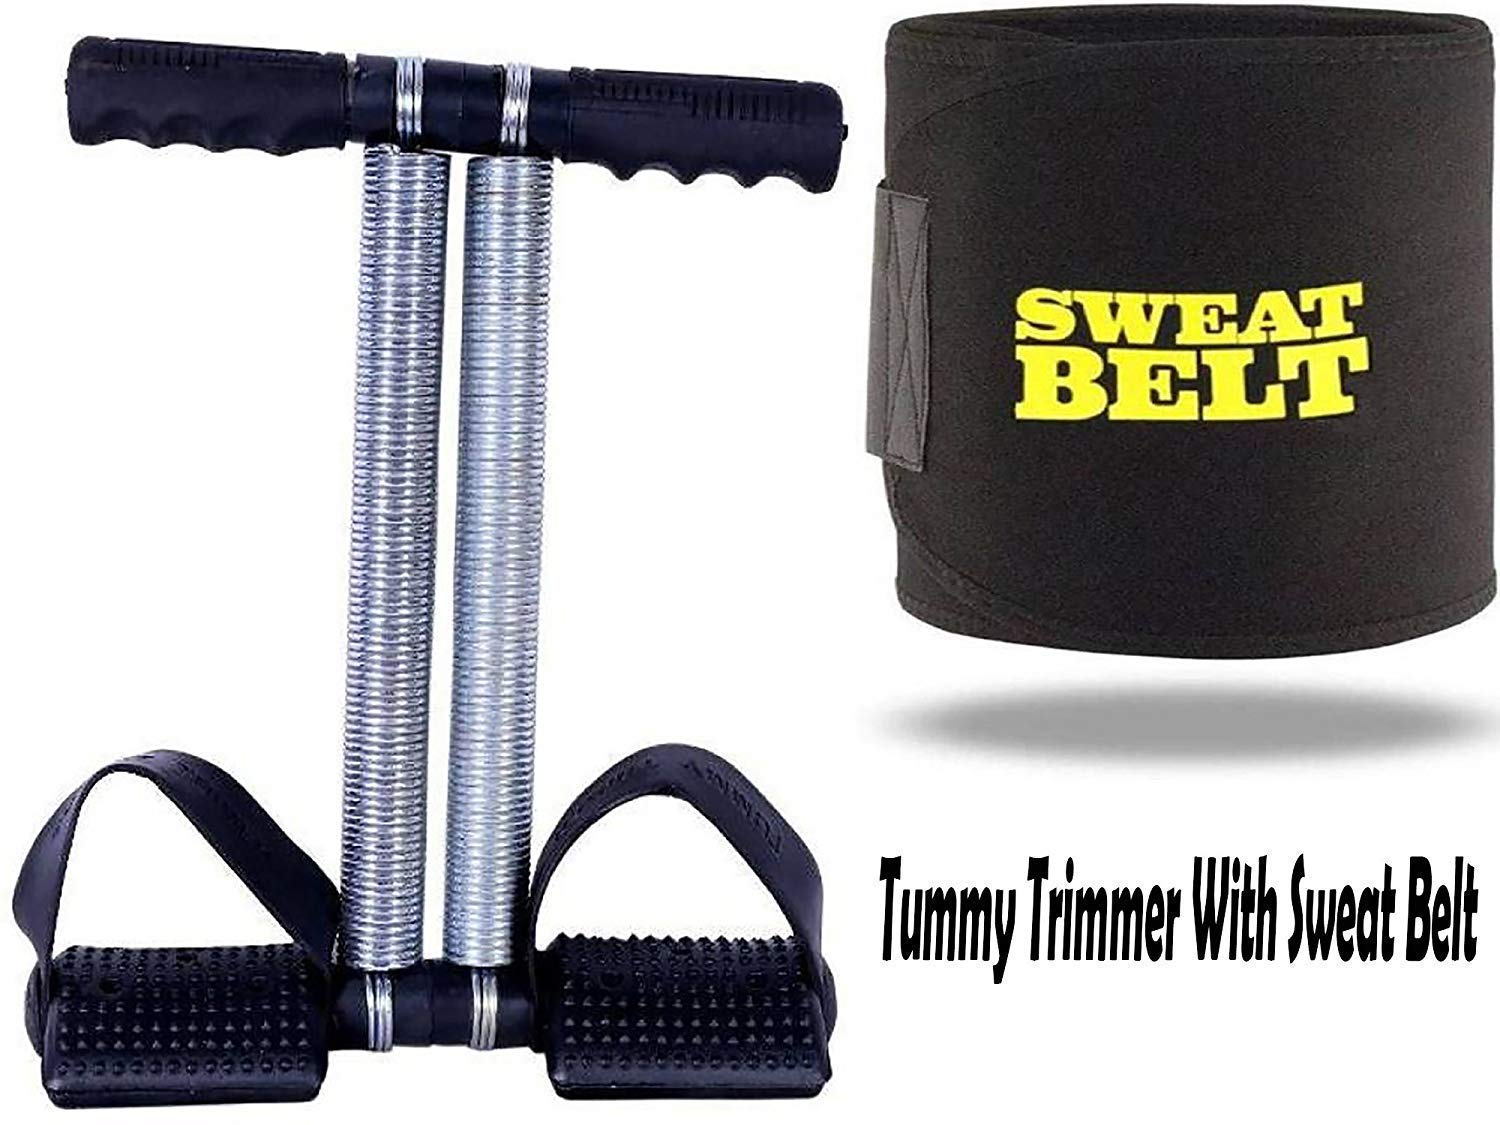 Tummy Trimmer with Sweat Belt (Combo Offer)